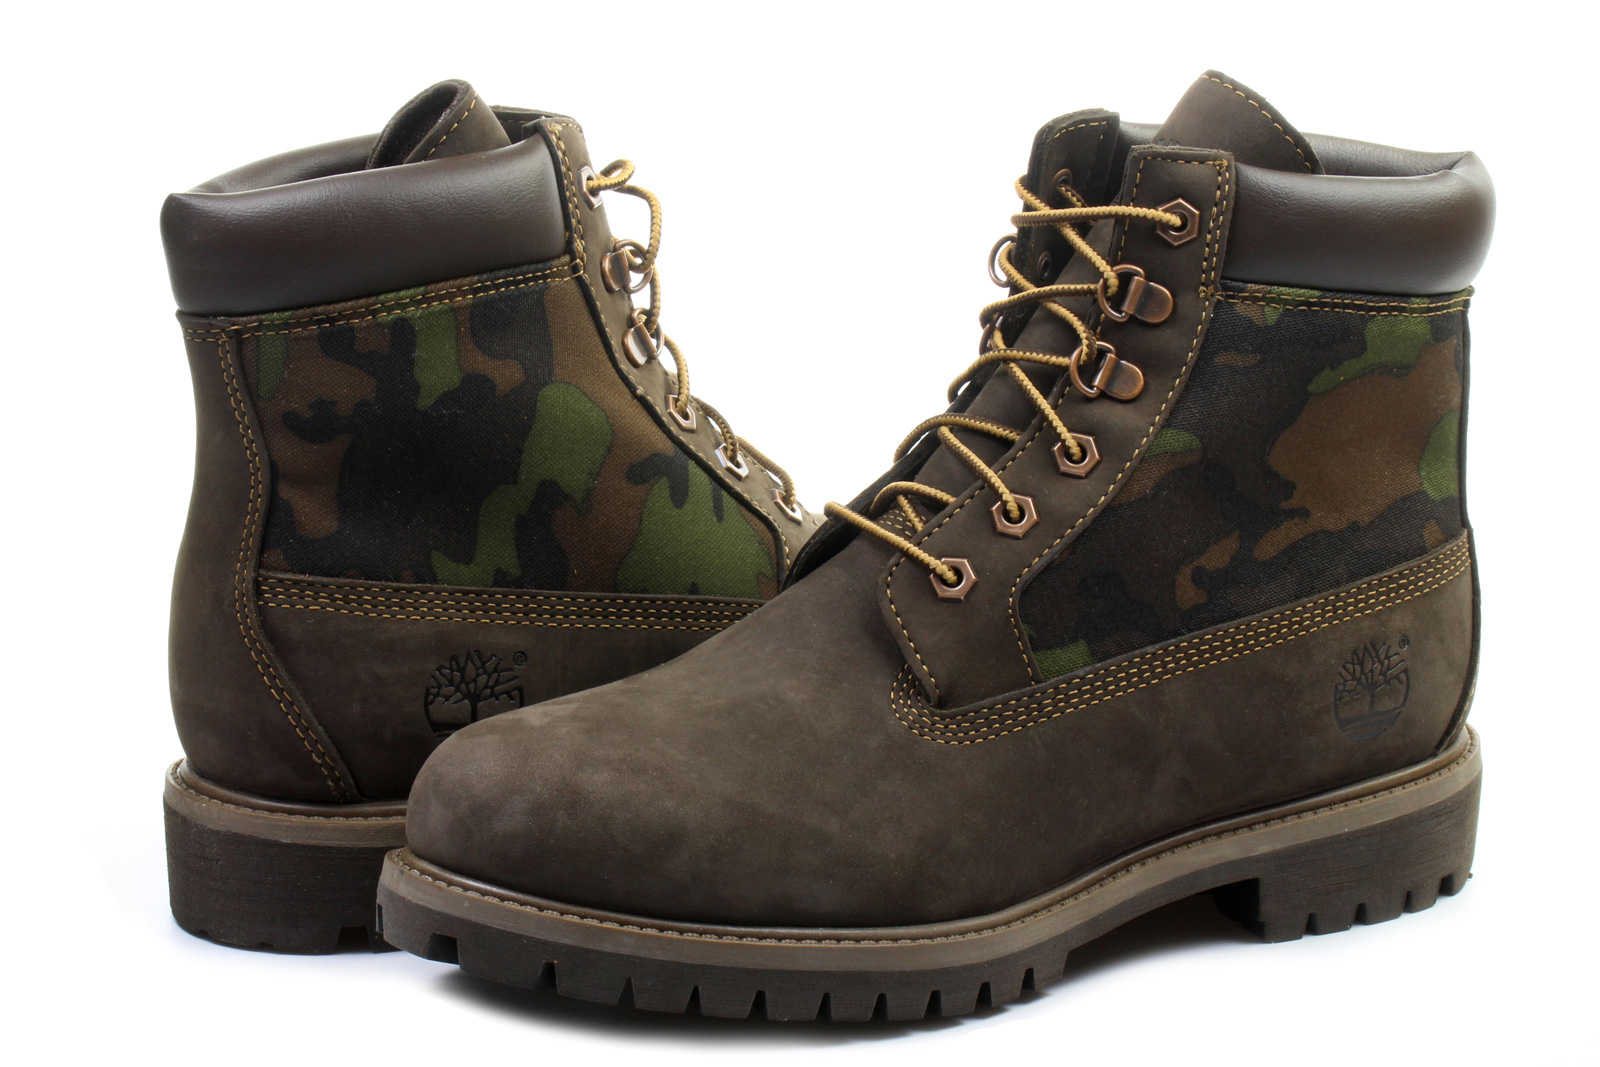 Timberland Topánky - 6 Inch Premium Boot - 6618A-BRN - Tenisky ... dff216bb786